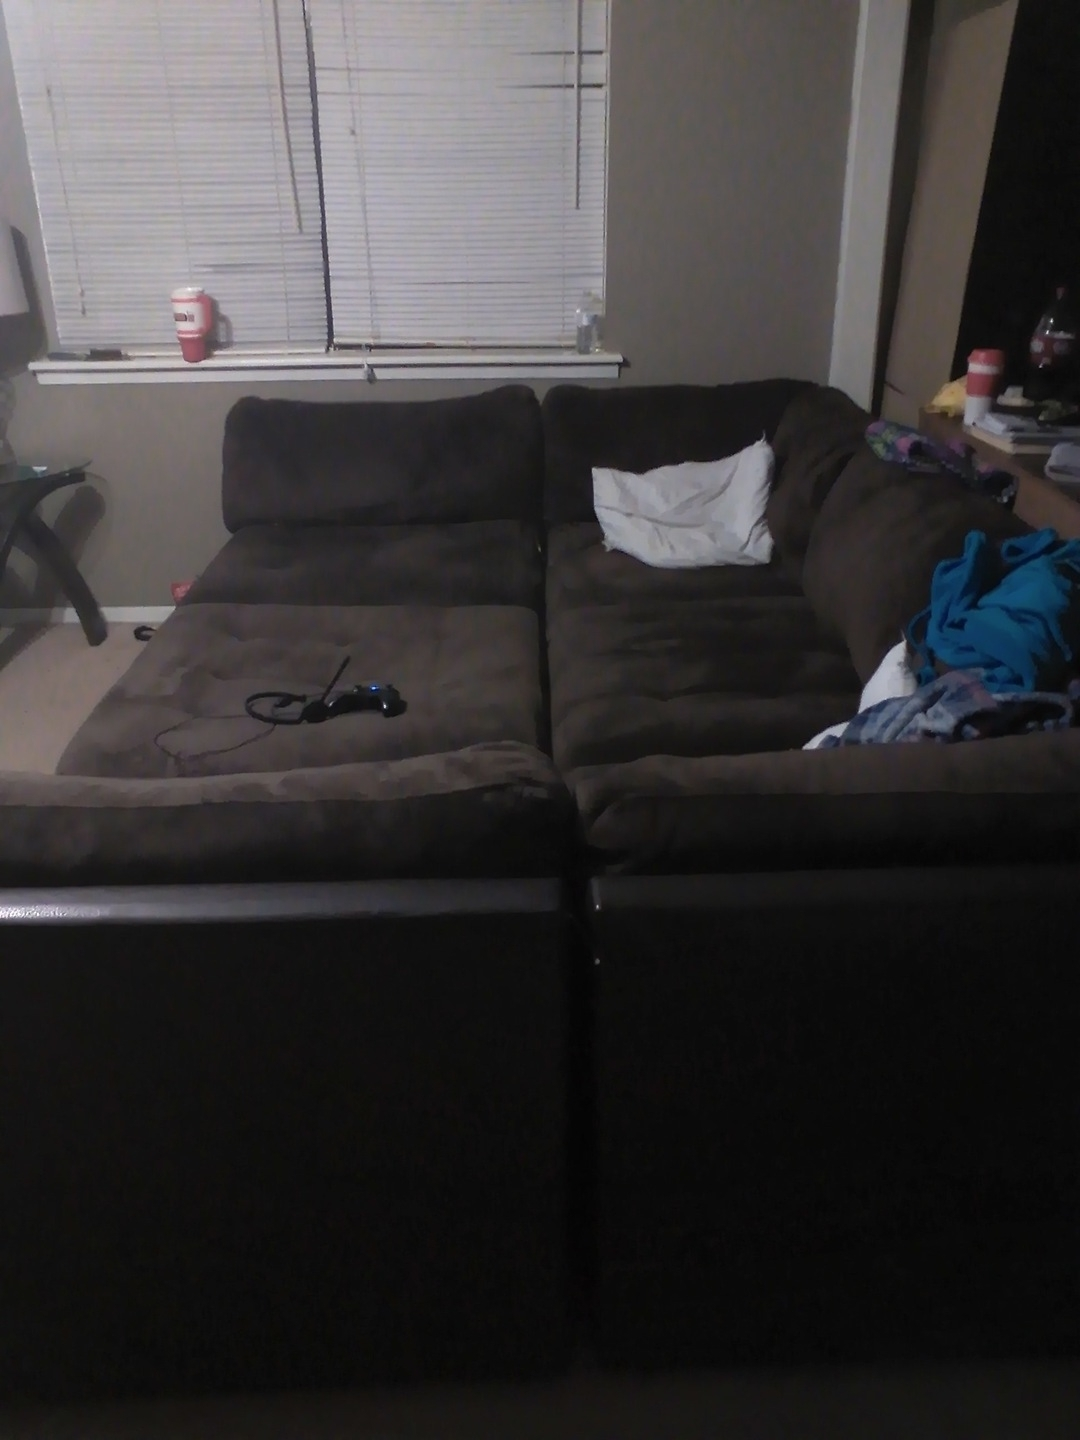 Sectional Sofas At Aarons Regarding 2018 Top Complaints And Reviews About Aaron Rents I Live With Some (View 4 of 15)